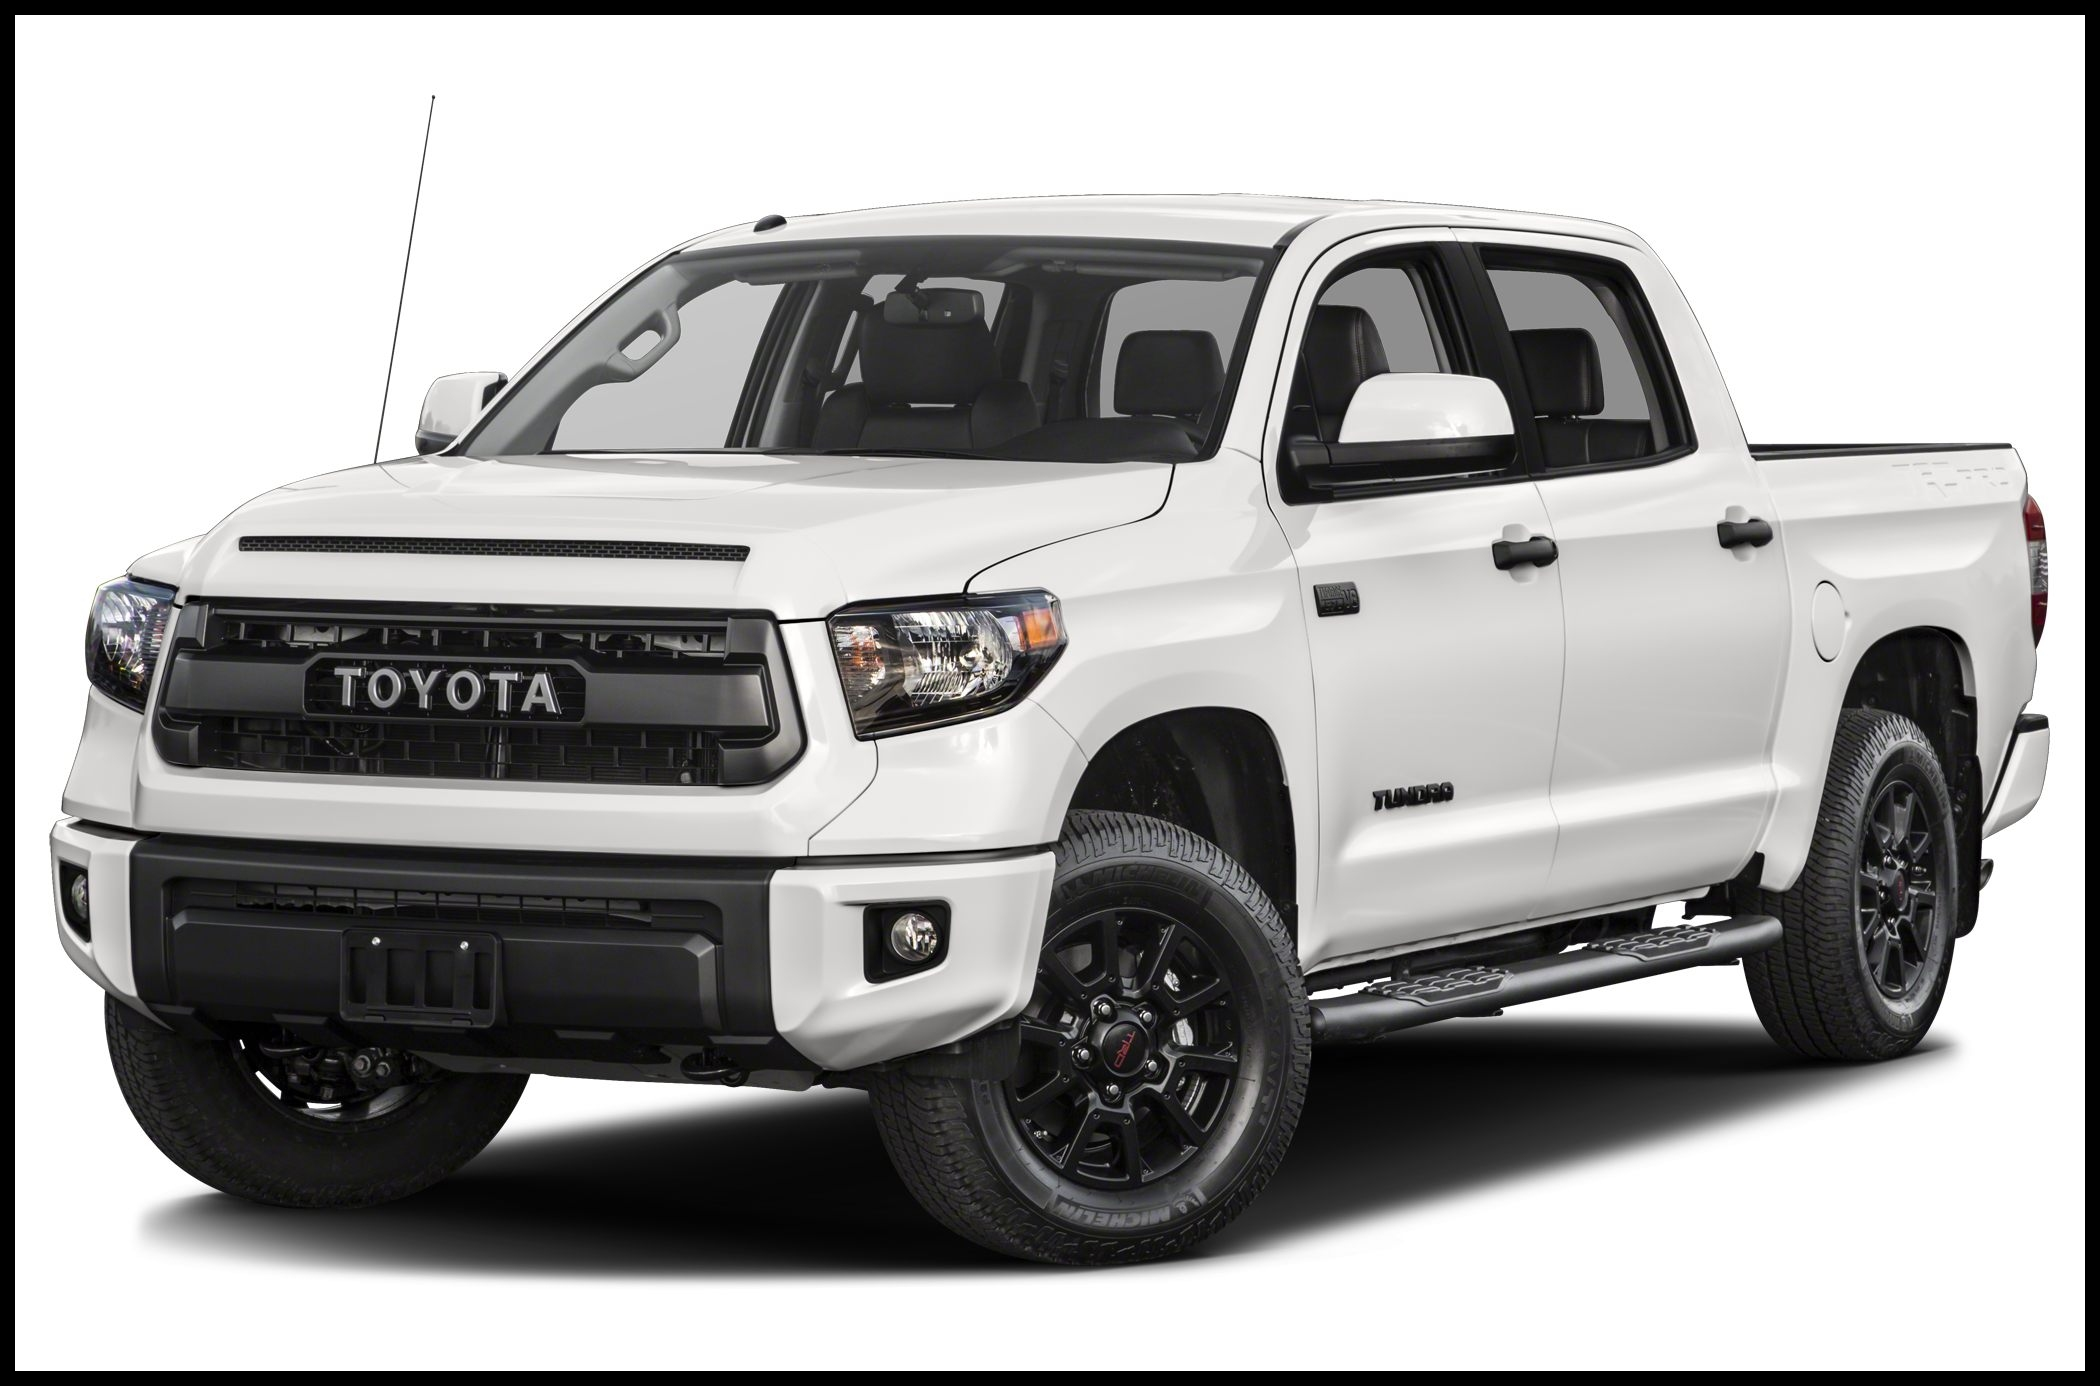 2016 Toyota Tundra TRD Pro 5 7L V8 4x4 CrewMax 5 6 ft box 145 7 in WB